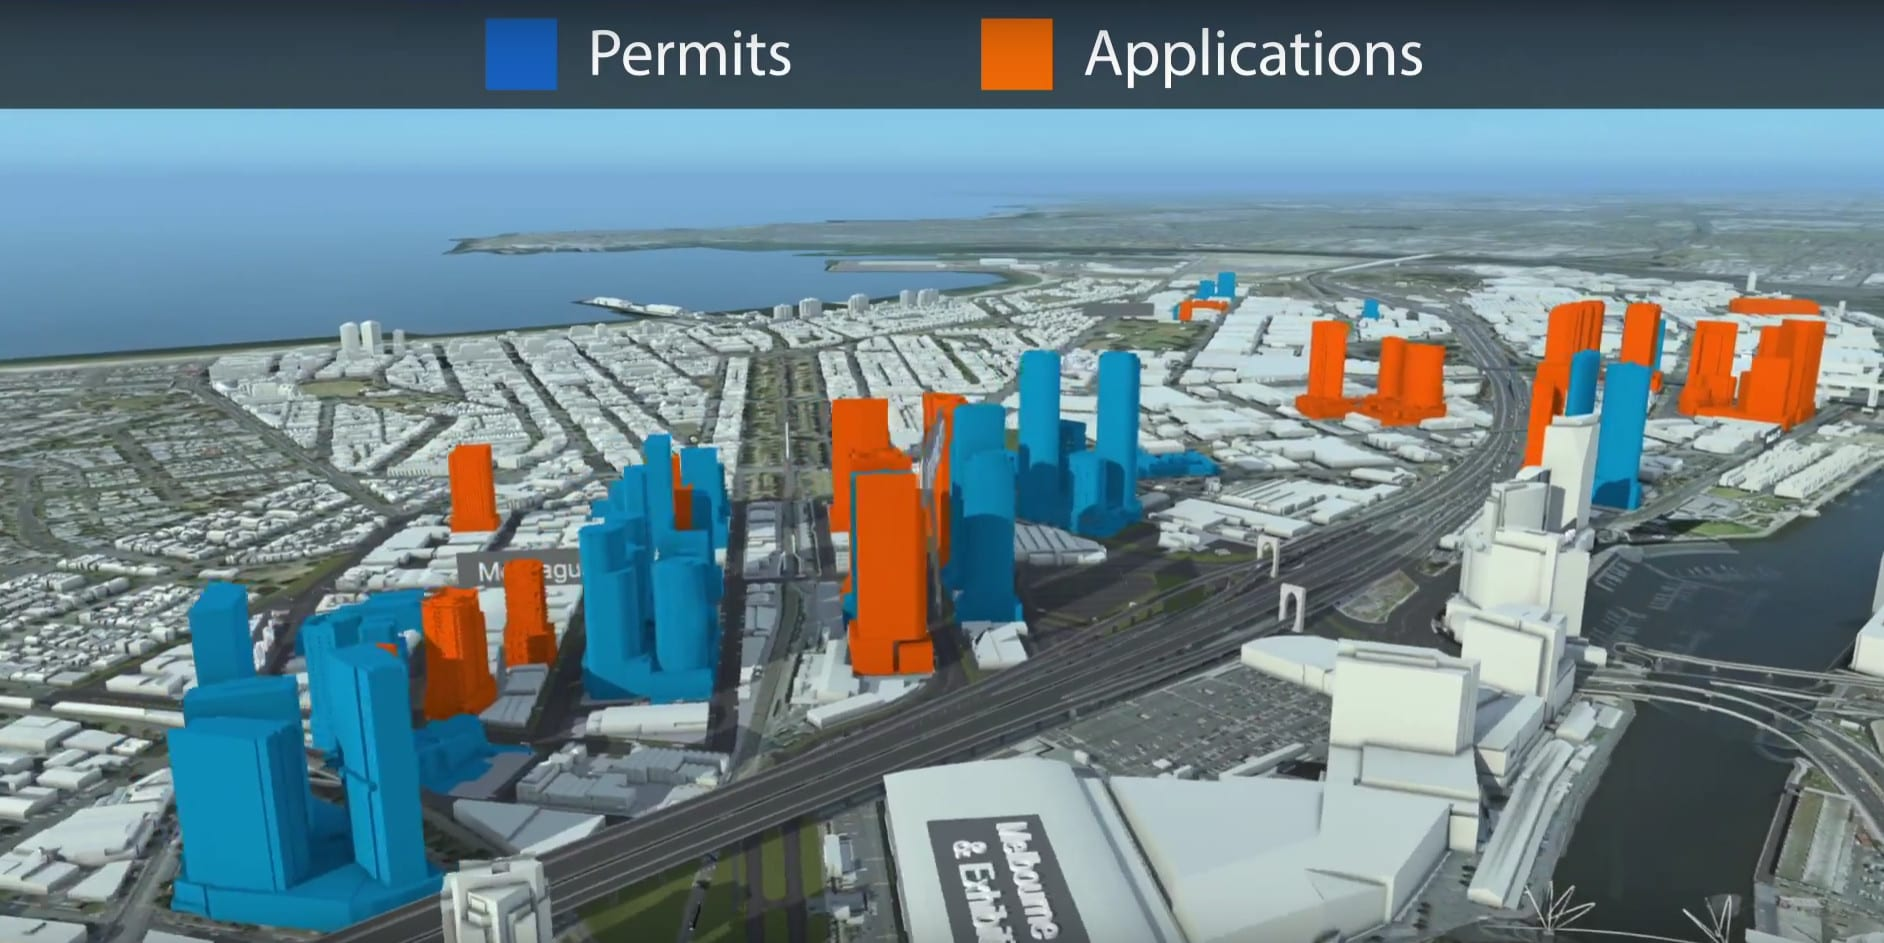 Planning Minister announces new controls for Fishermans Bend